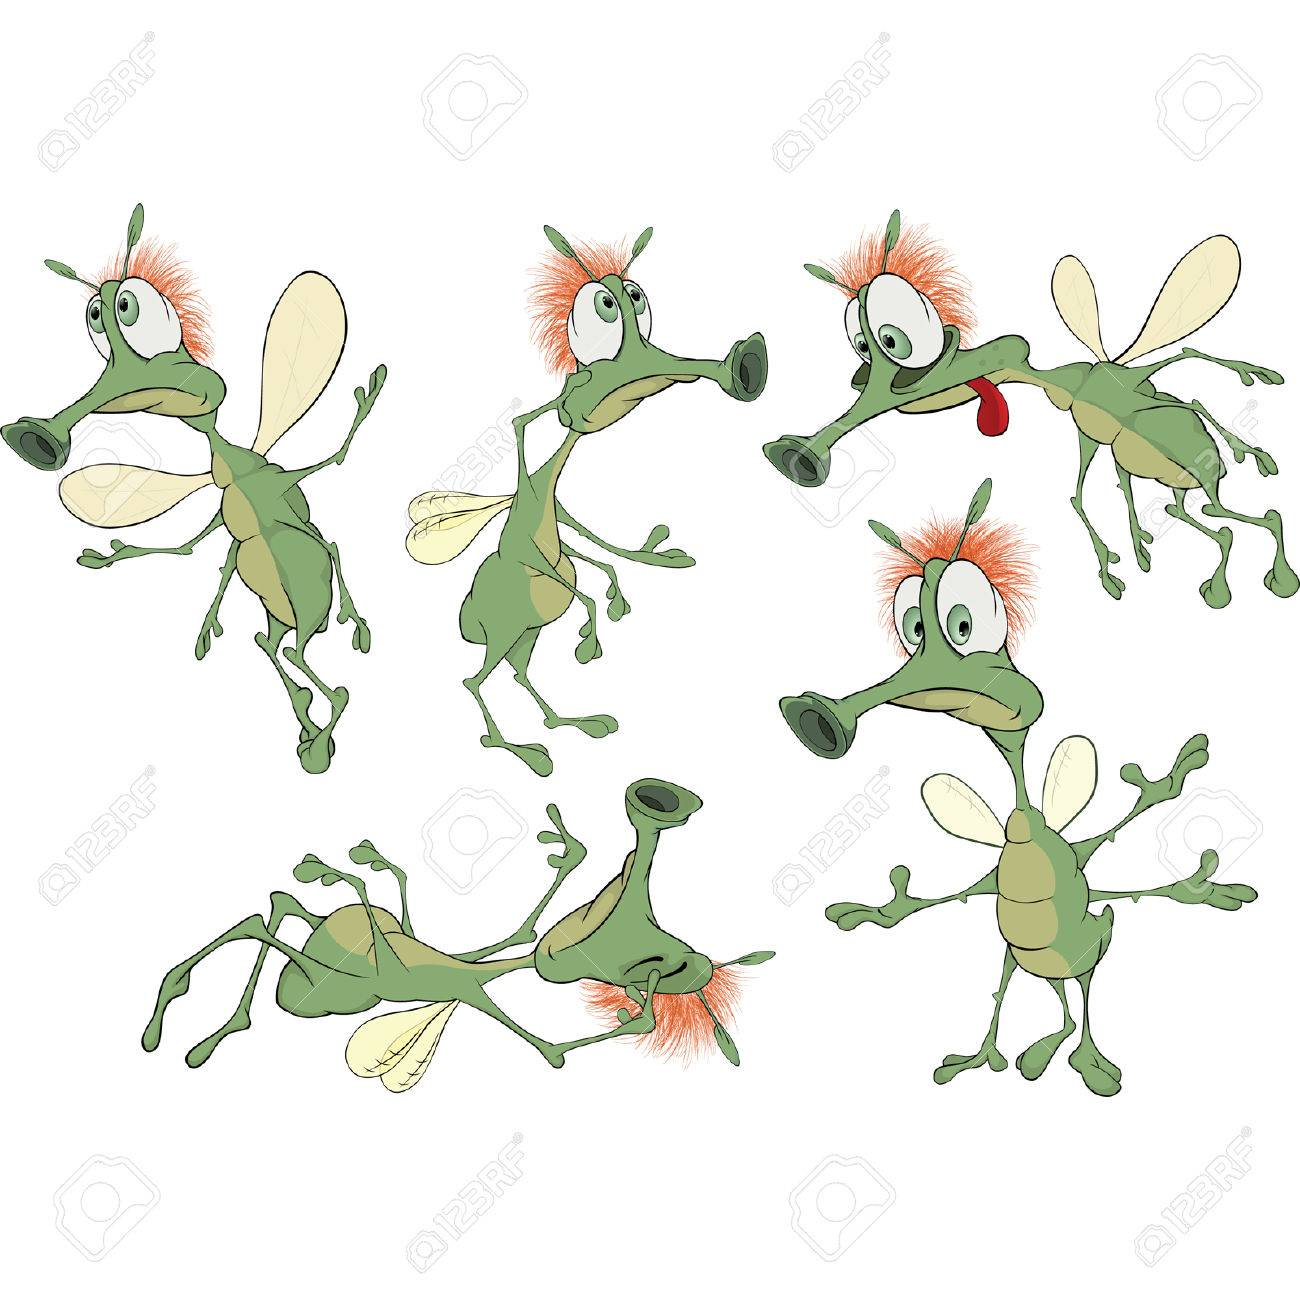 Set of green Insects cartoons Stock Vector - 27712110